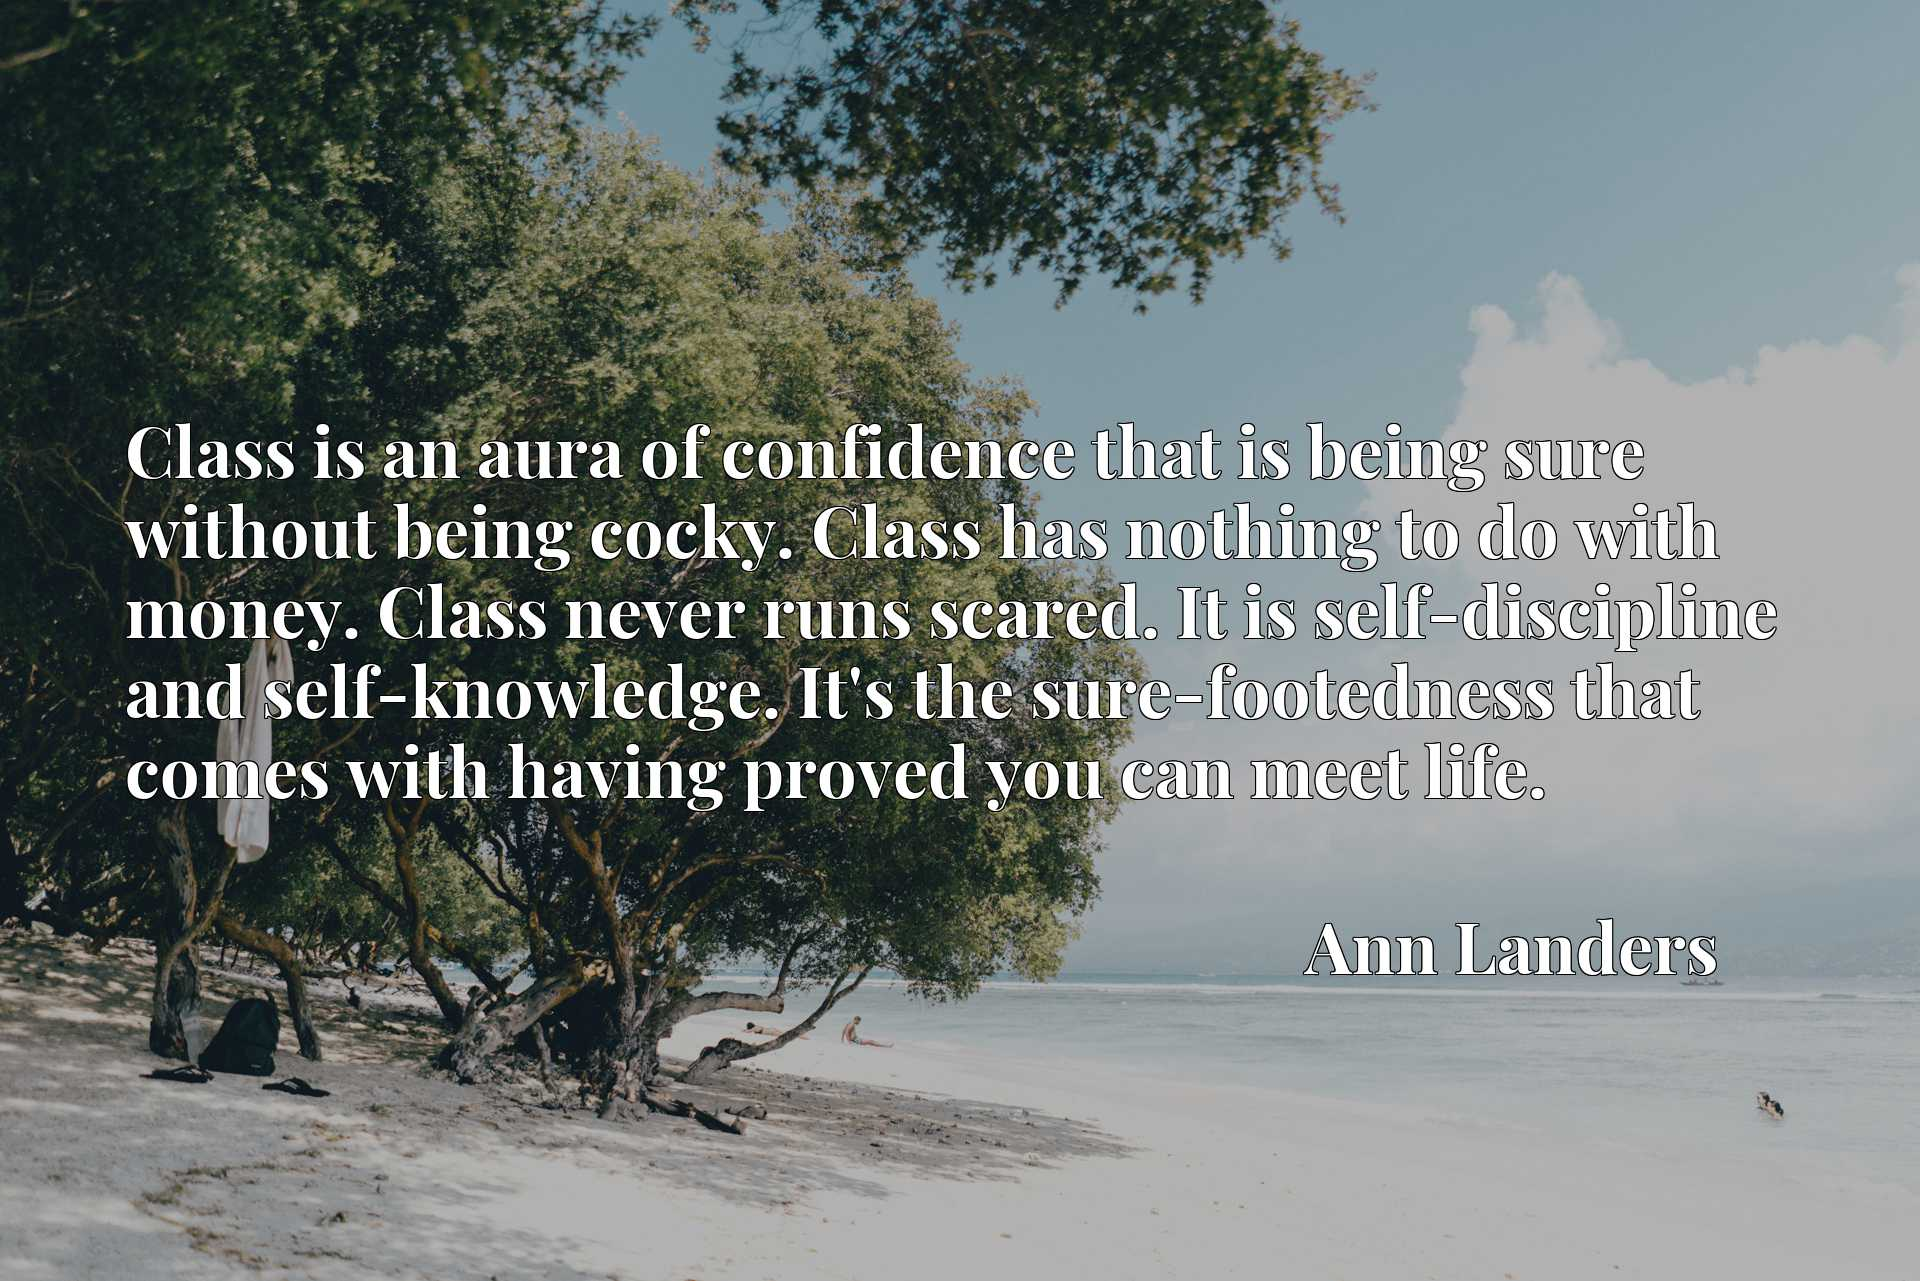 Class is an aura of confidence that is being sure without being cocky. Class has nothing to do with money. Class never runs scared. It is self-discipline and self-knowledge. It's the sure-footedness that comes with having proved you can meet life.